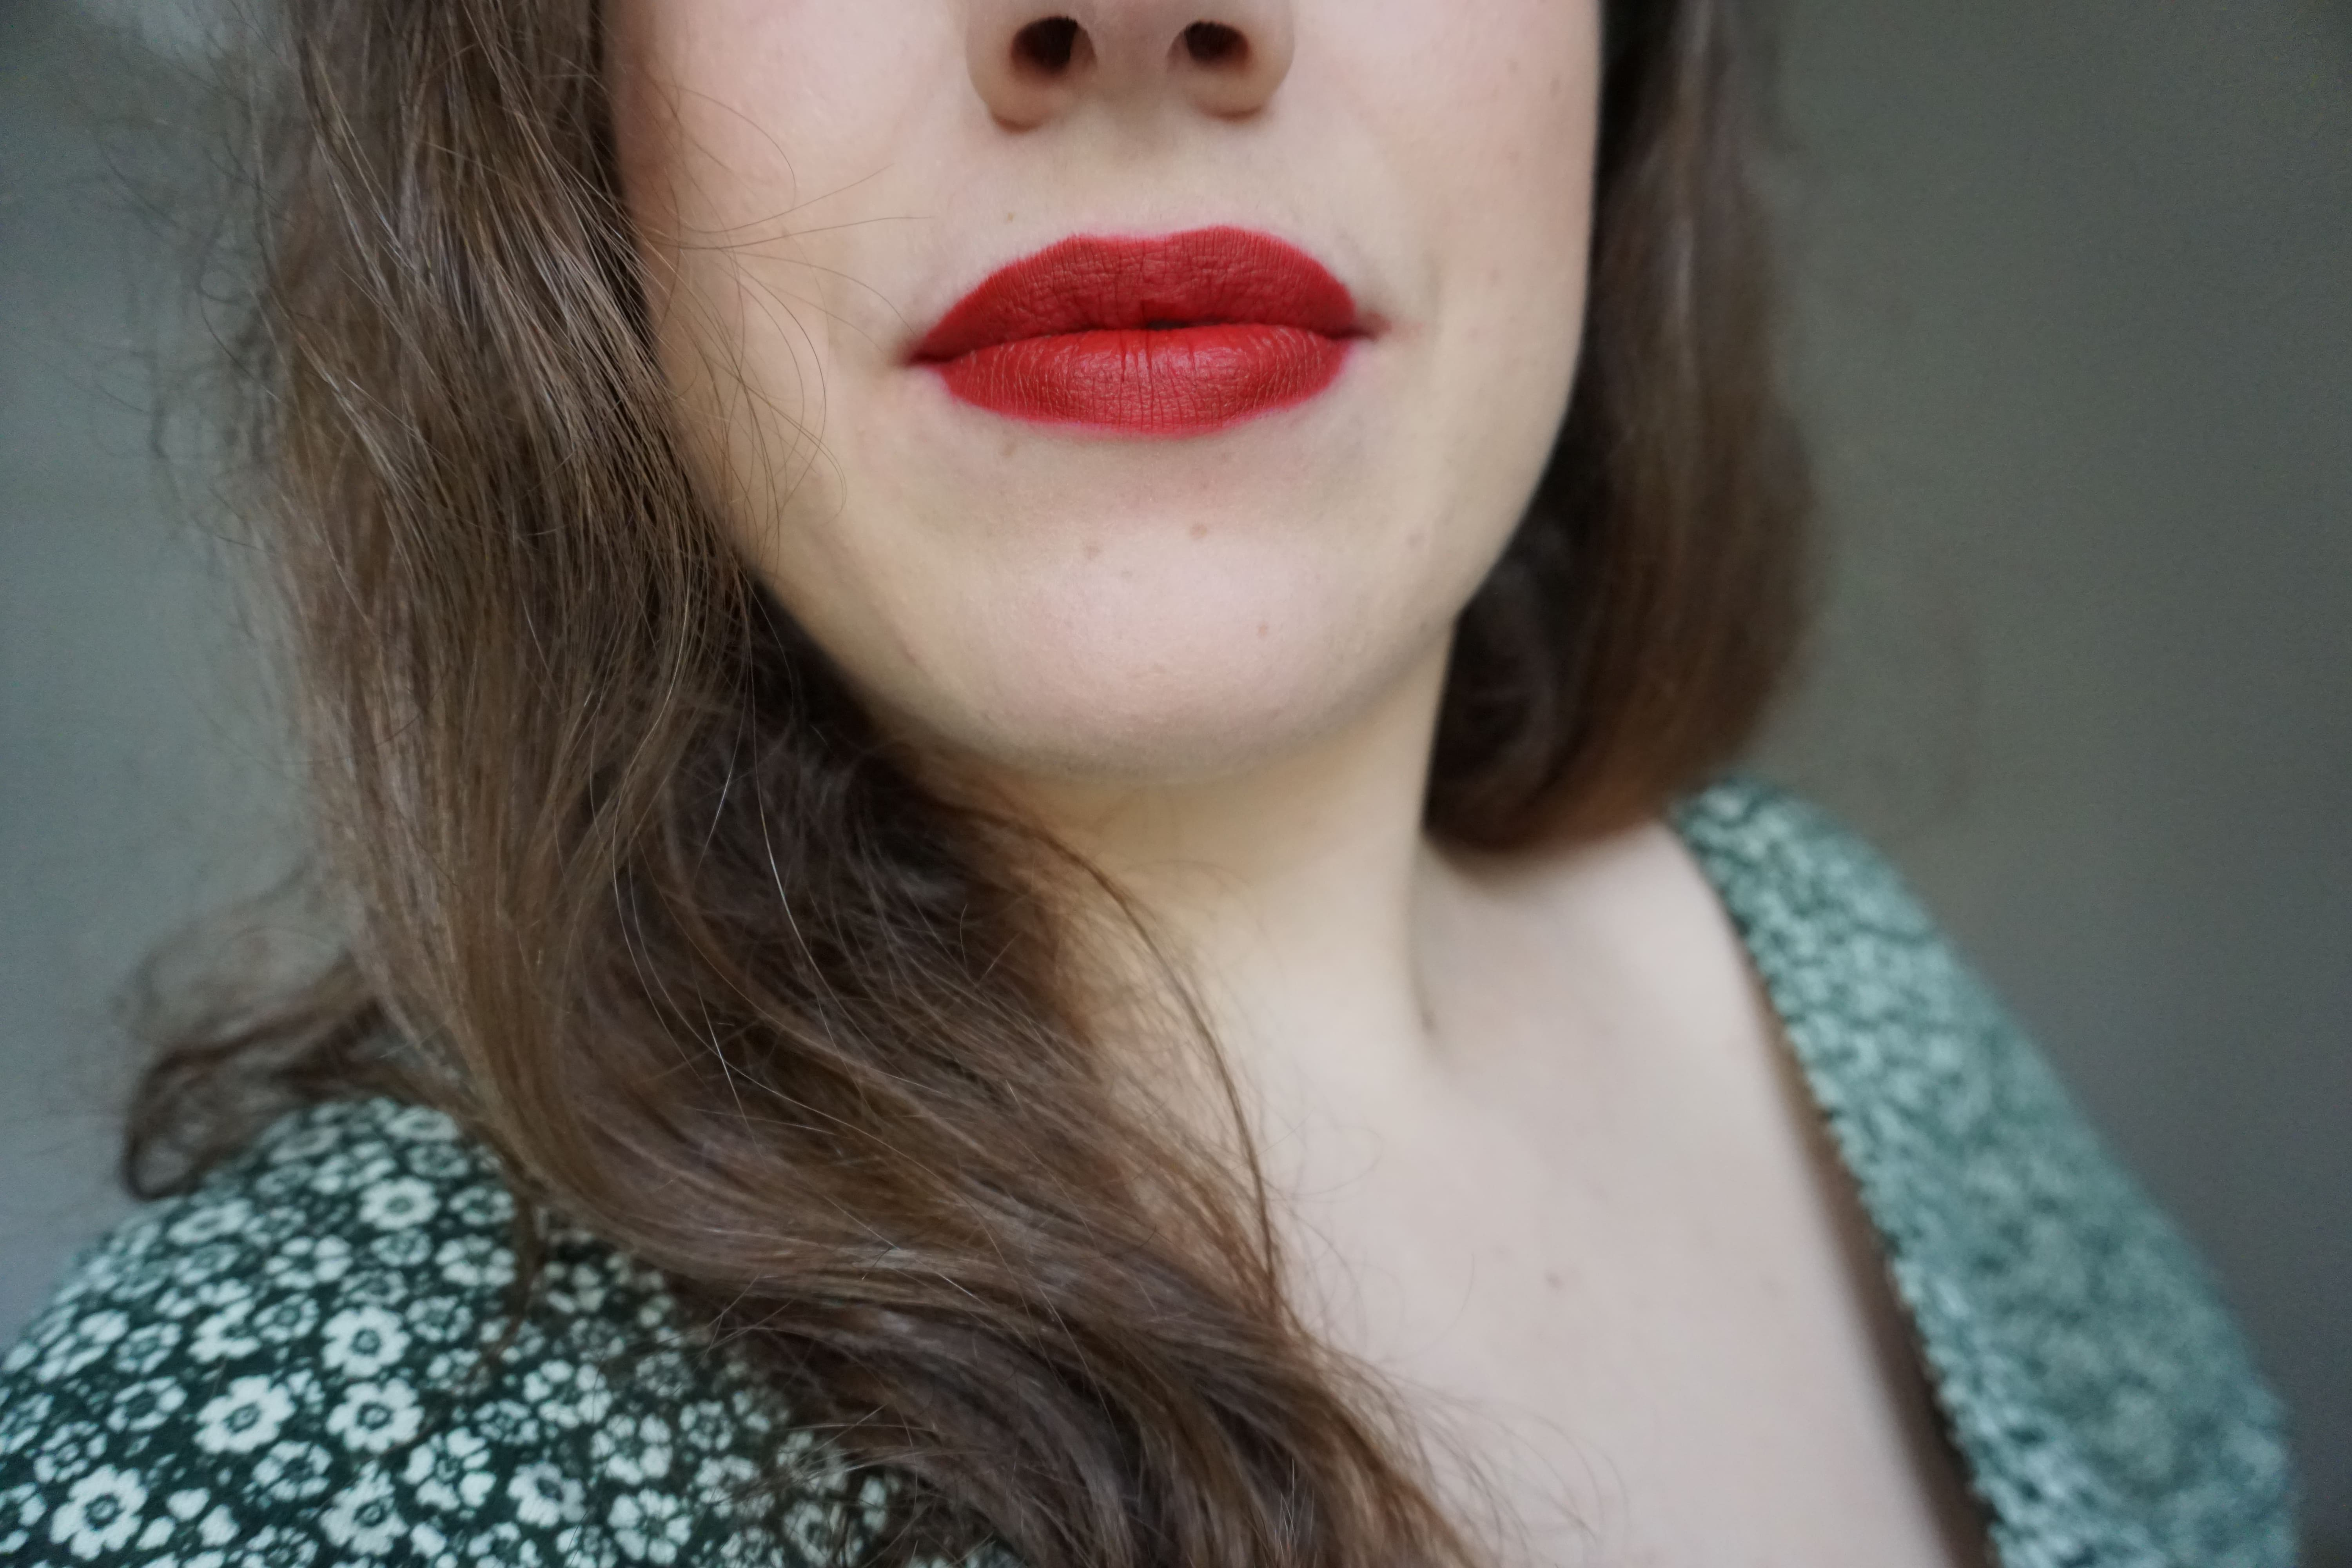 Velvet Jazz Lisa Eldridge Lipstick swatch